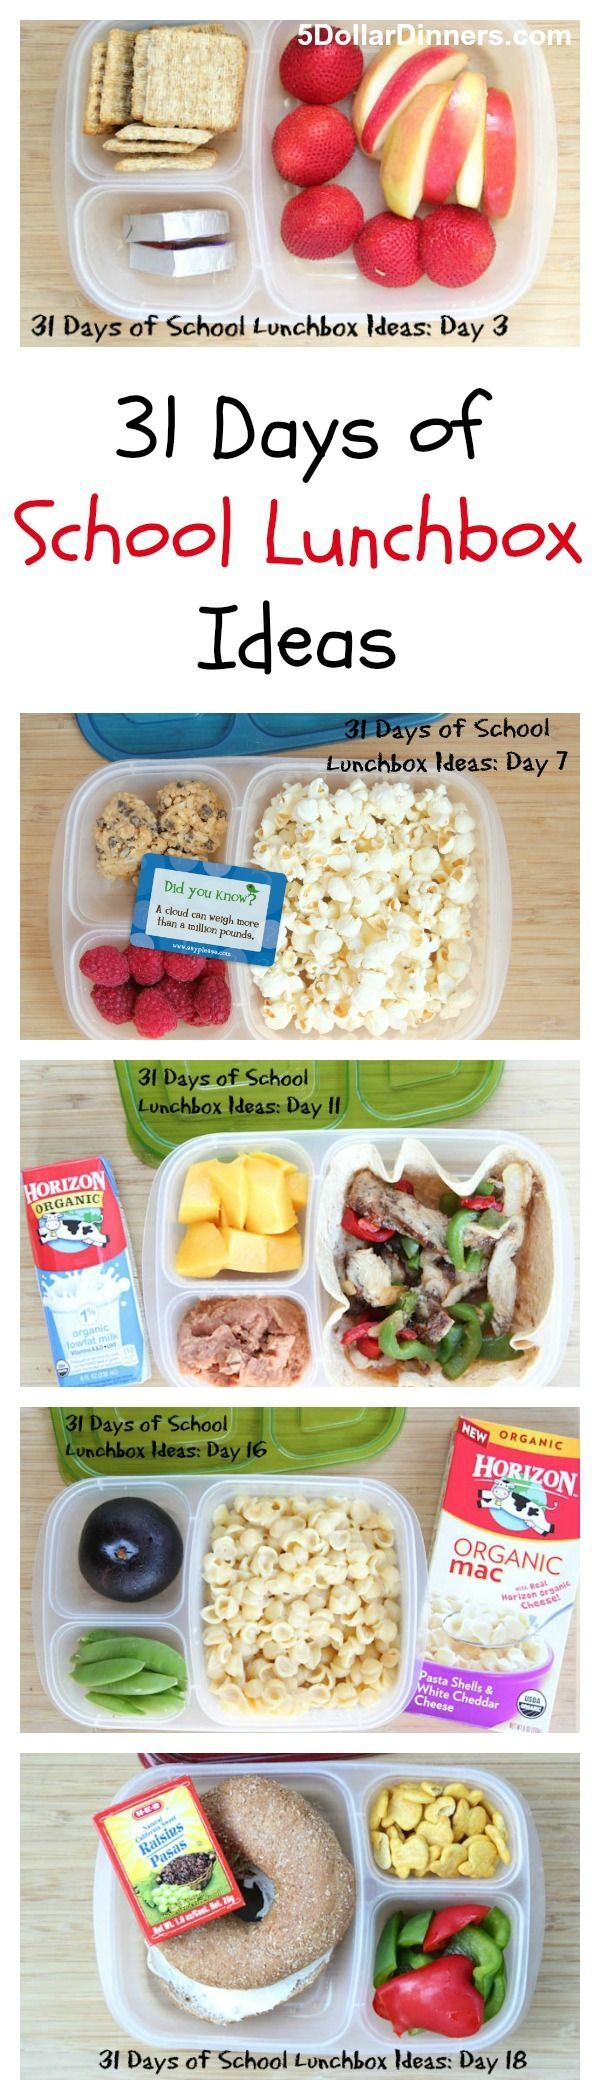 31 days of school lunch IDEAS